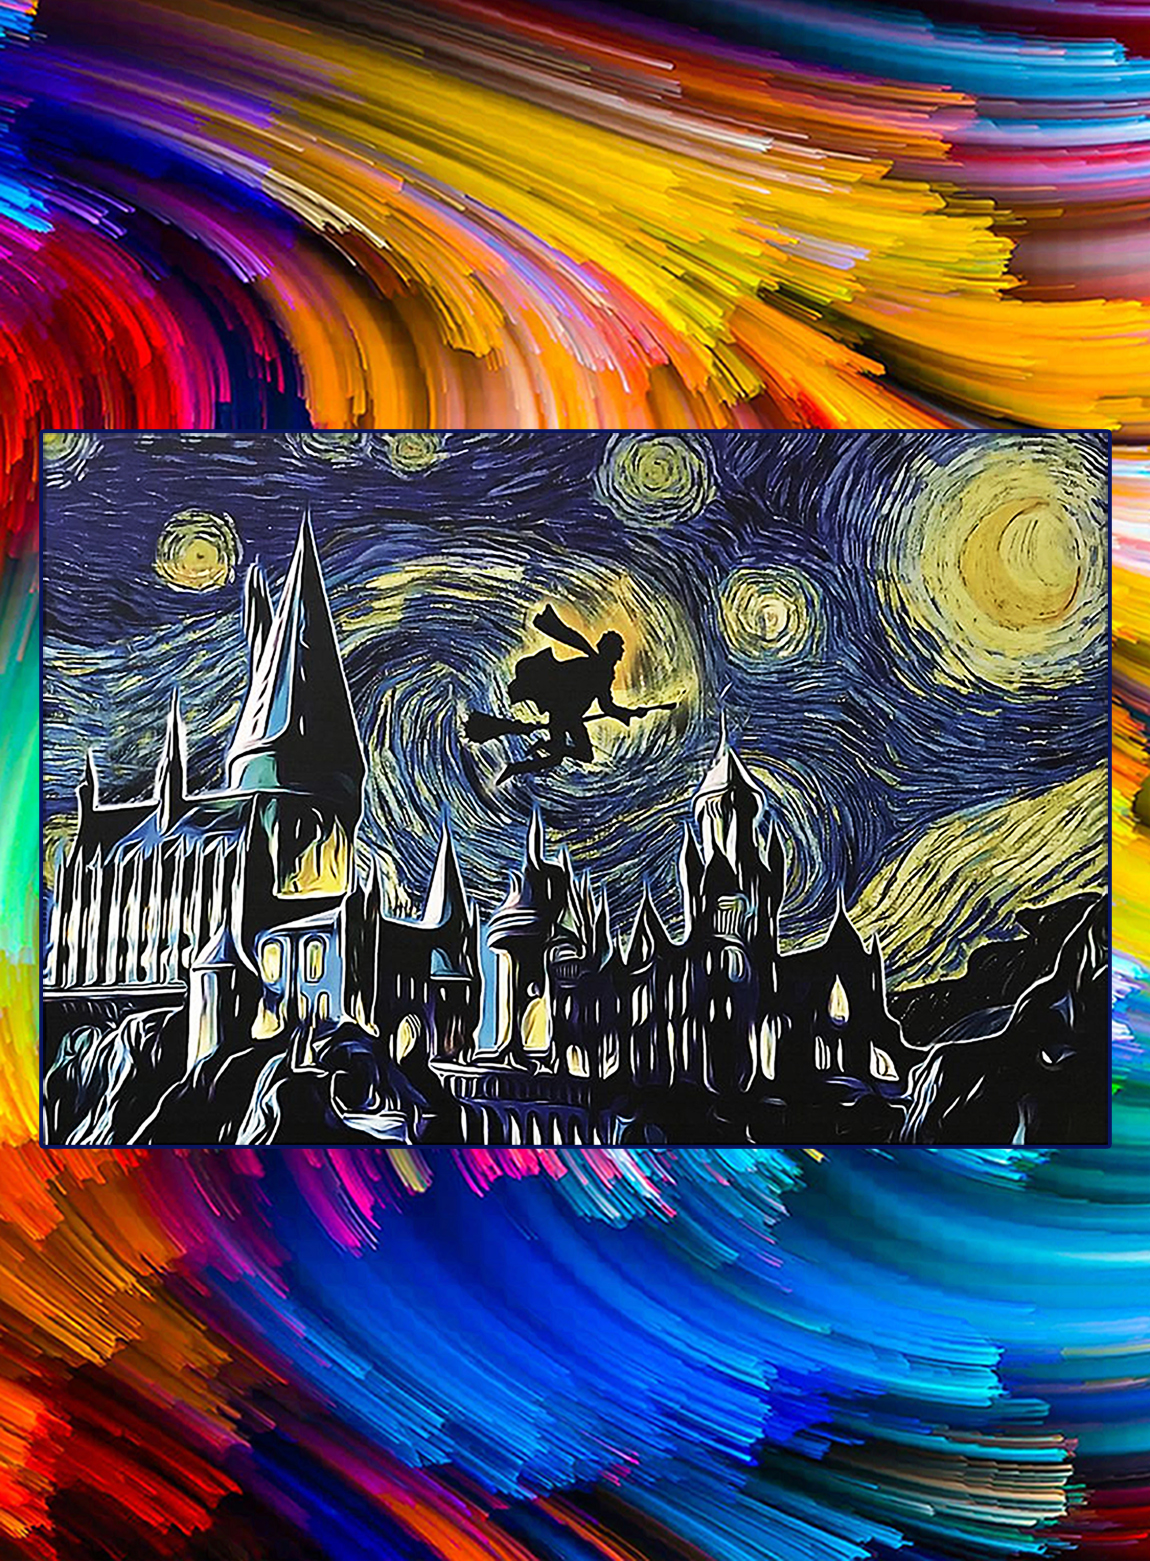 Hogwarts harry potter flying starry night poster - A2